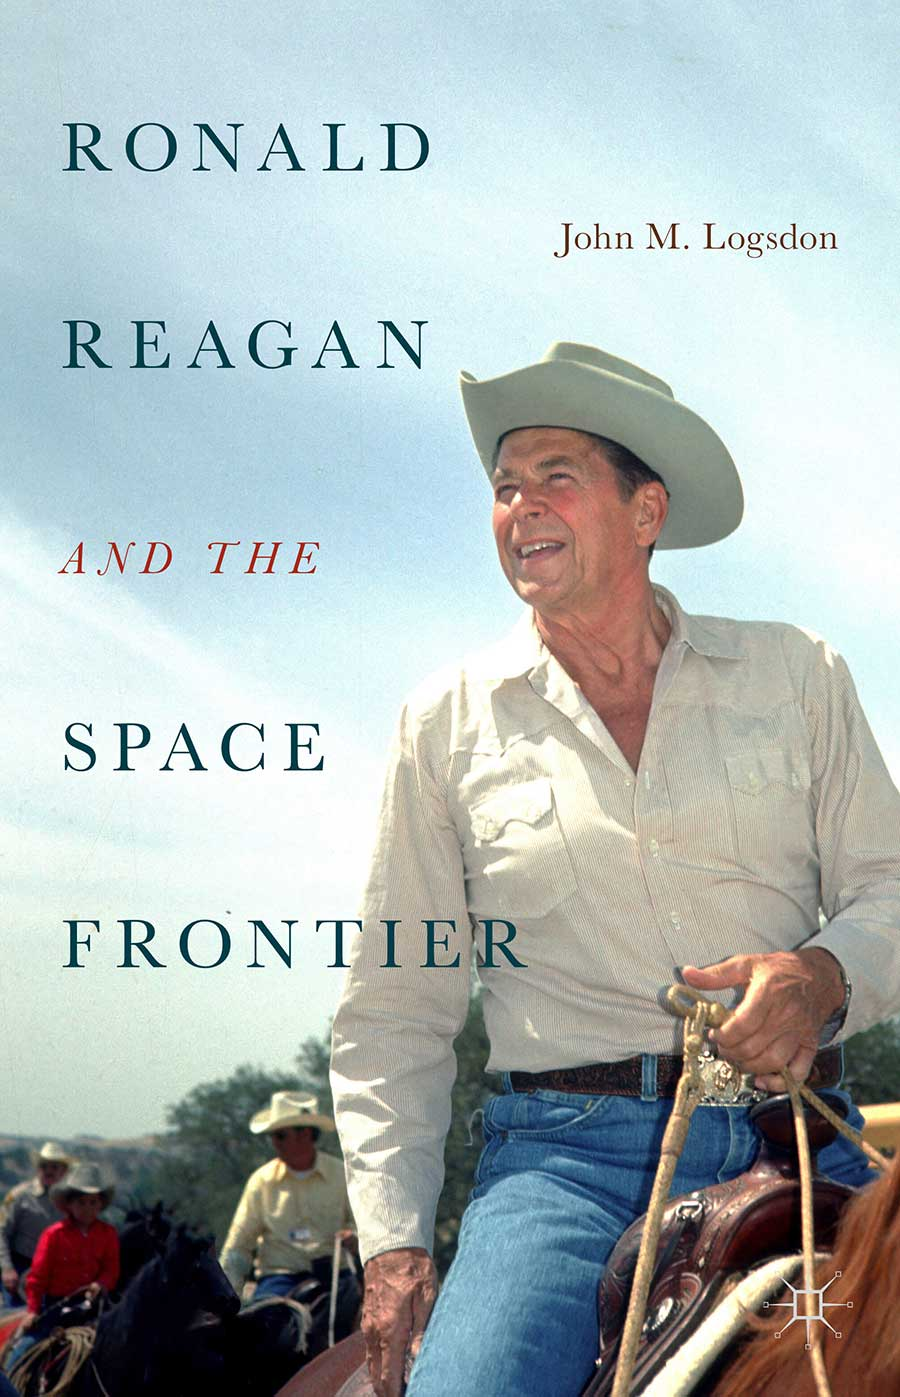 """Ronald Reagan and the Space Frontier (2019) - """"Once again, John Logsdon puts us 'in the room where it happens' . . . No one is better at transforming meticulous research and complex history into and engaging and highly readable tale.""""– Kathryn Sullivan, former astronaut and Administrator, National Oceanic and Atmospheric Administration""""Without question, Professor Logsdon is the preeminent historian of the U.S. space program.""""– Gilbert Rye, National Security Council Director for Space Programs, 1982-1985""""John Logsdon has told this story with verve and style. His depth of knowledge is unparalleled, his breadth of analysis is incomparable, and his presentation is unrivaled in this superb account.""""– Roger Launius, author and former NASA chief historian"""